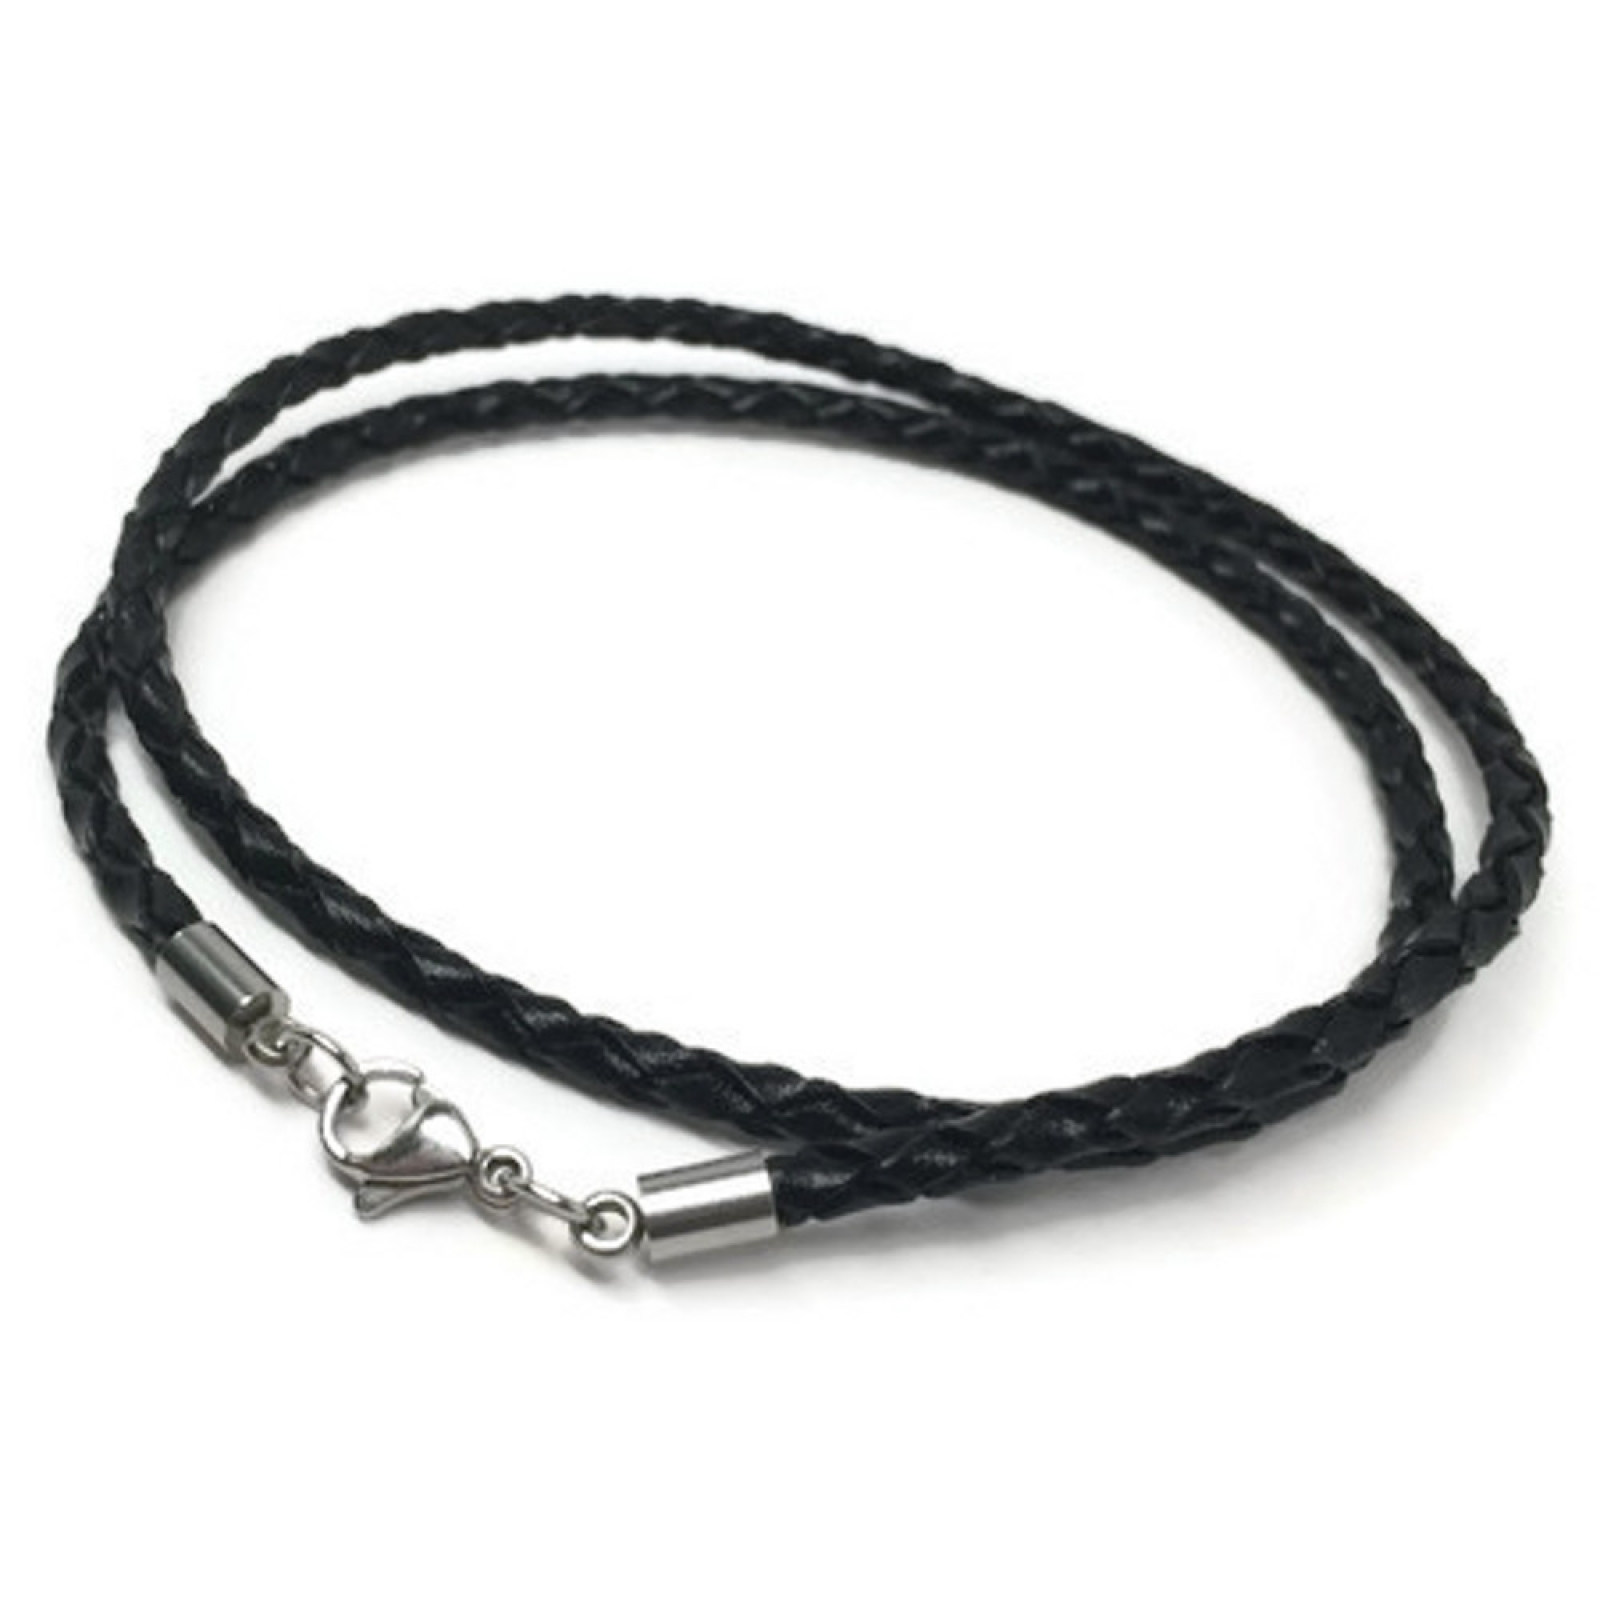 dior collective women jewellery christian leather necklaces necklace vestiaire s black